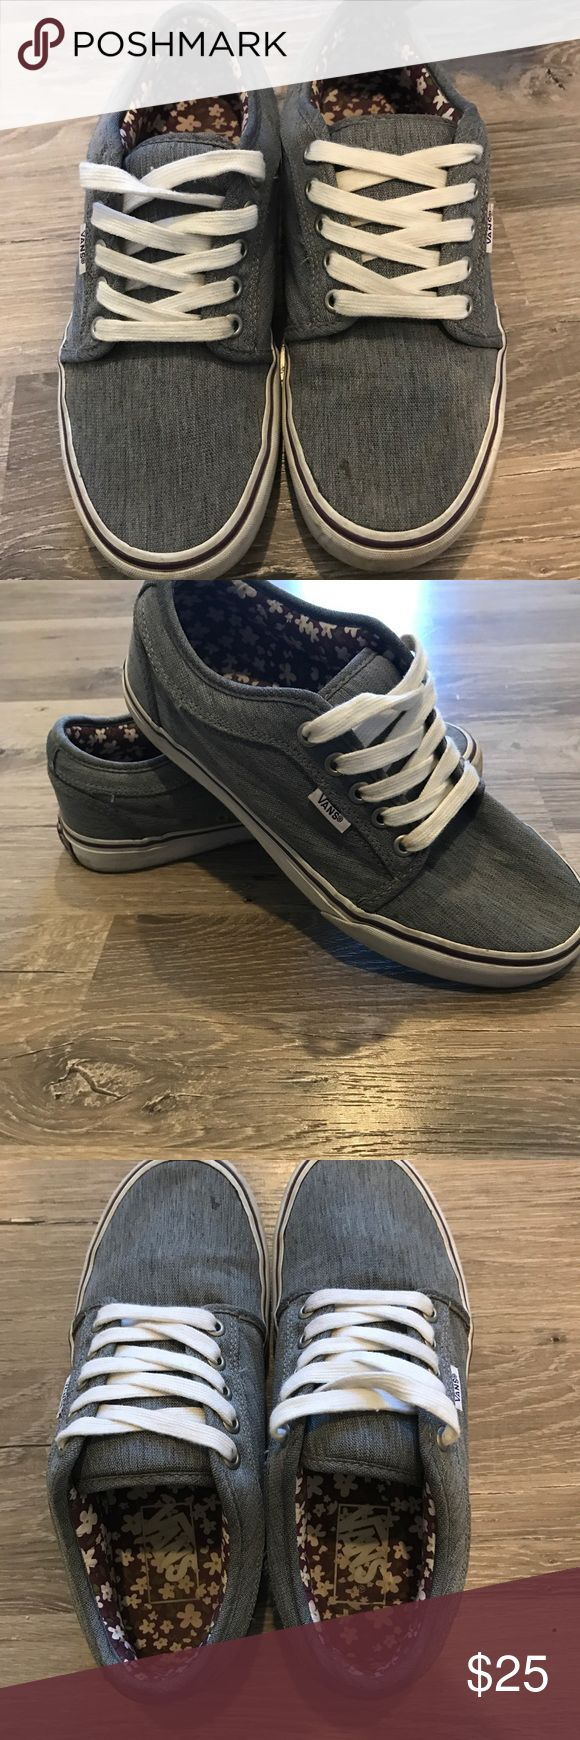 Women's vans Gray speckled vans with purple strip on sole. Inside is purple flower design. Worn once! No wear on them. ☀️ Bundle 3 or more for discount ☀️ Vans Other